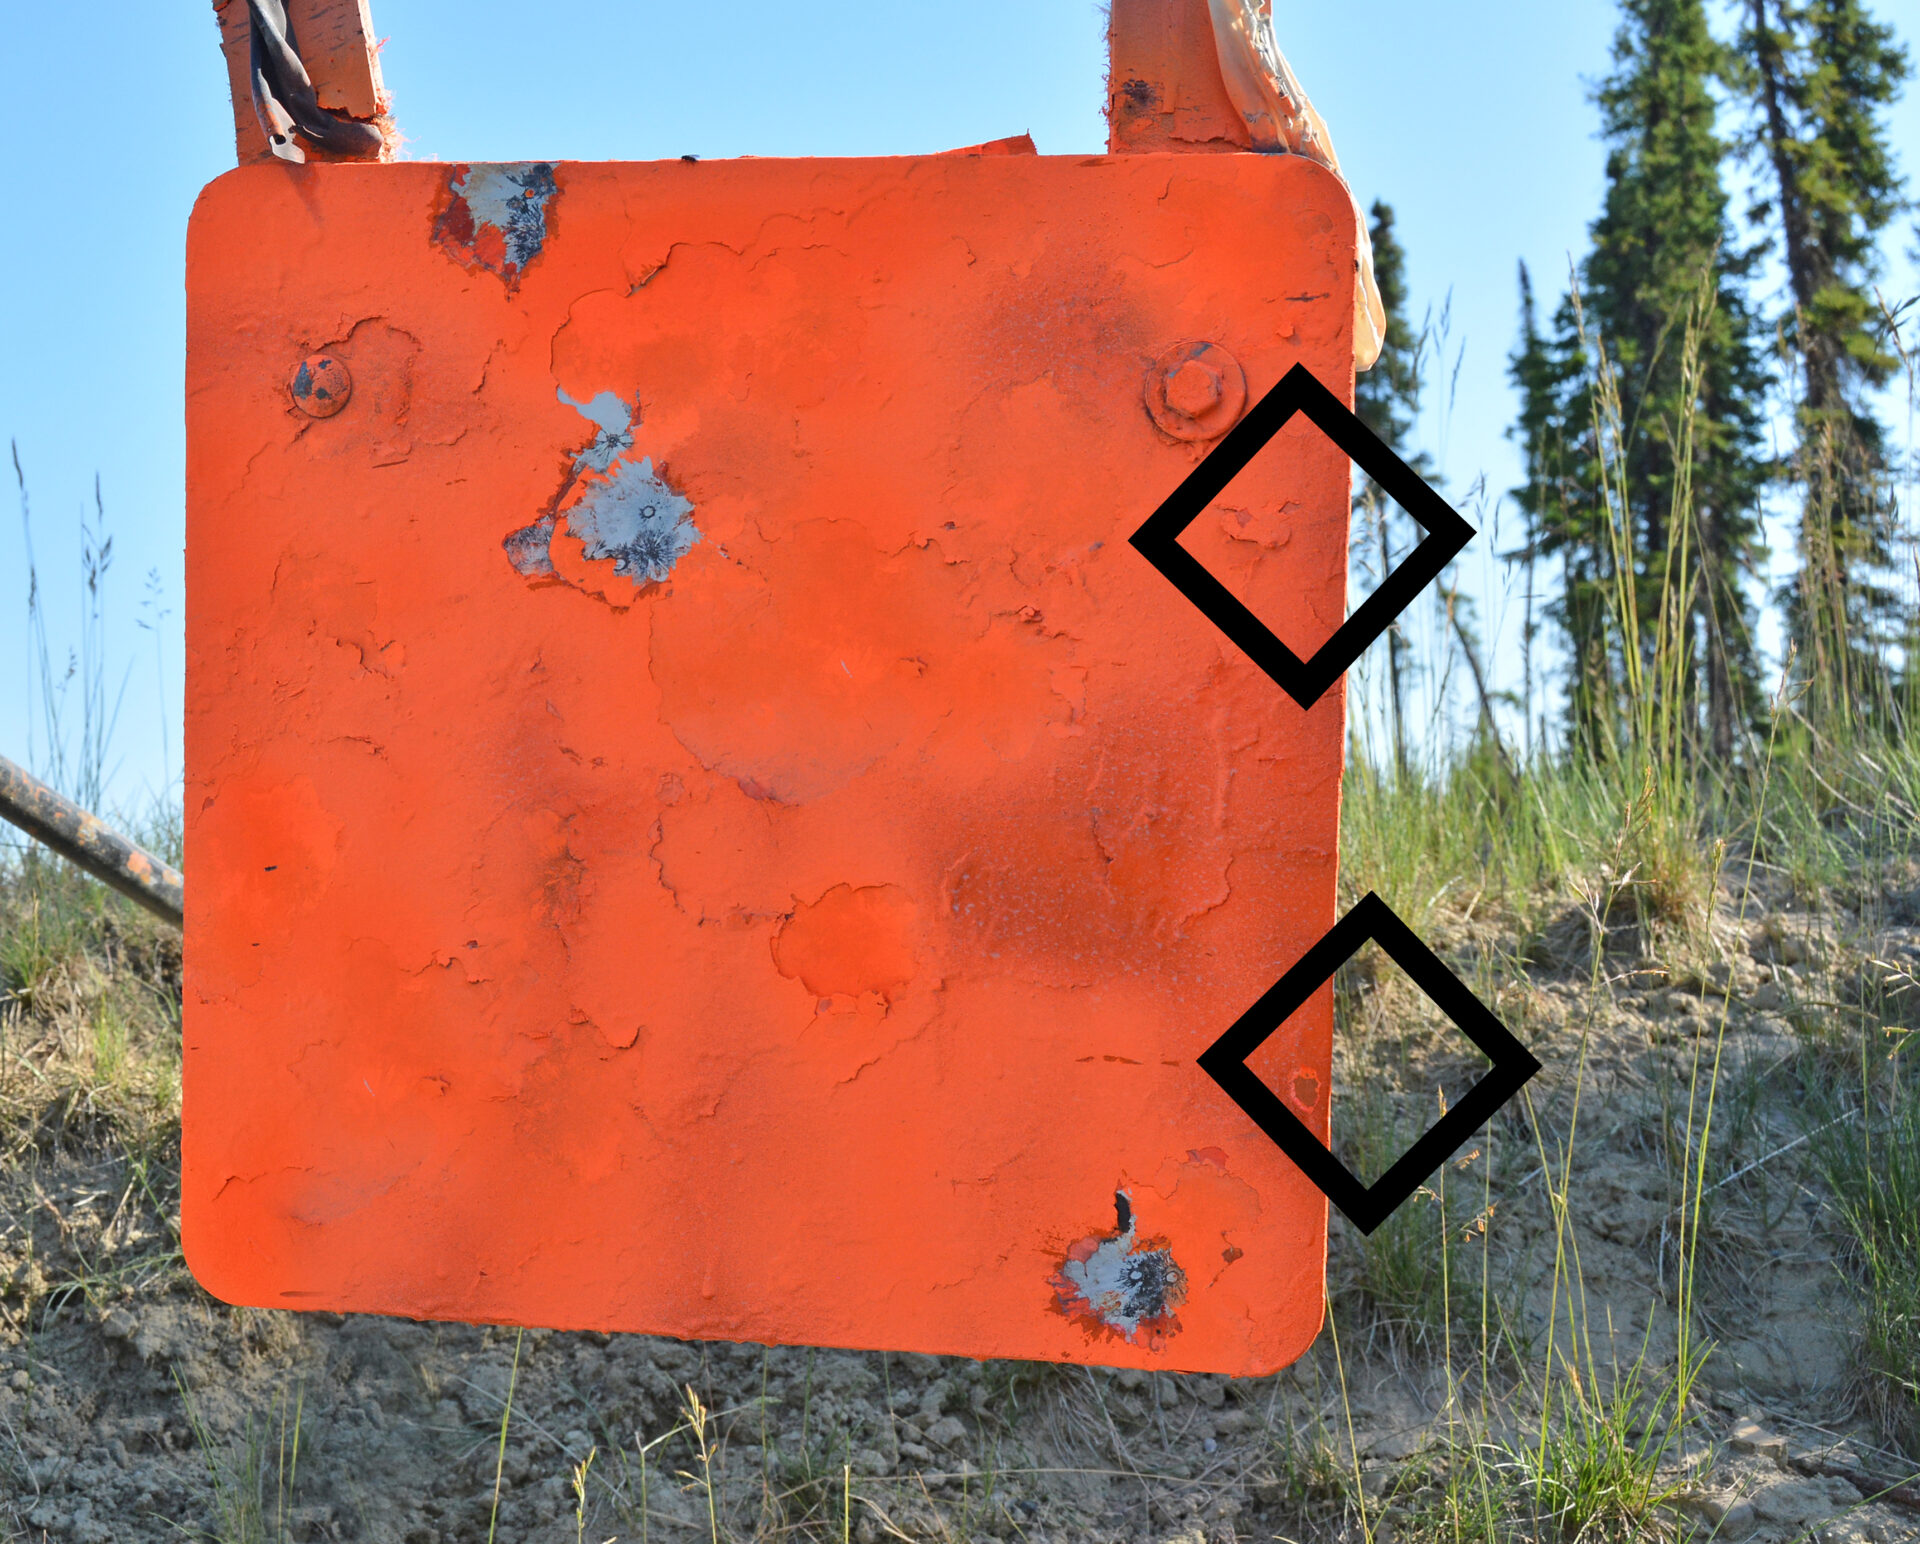 Laser rangefinders should be tested for reticle/beam alignment by ranging near all four edges of a rectangular target. Here, the top reticle placement should read the target distance, while the bottom placement should read the area behind the target. Repeat for all four sides.